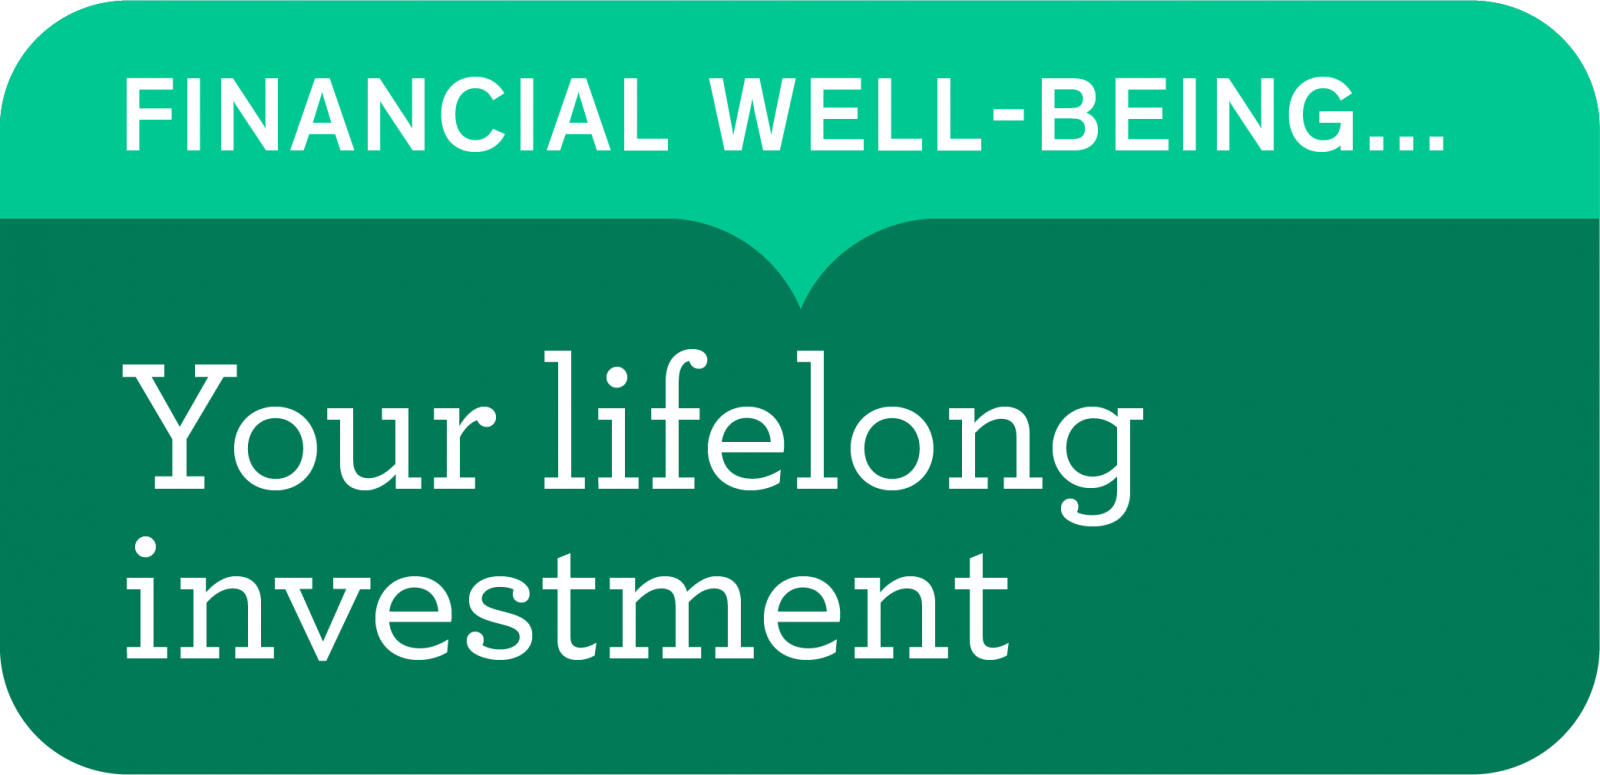 Financial-Well-Being: Your lifelong investment